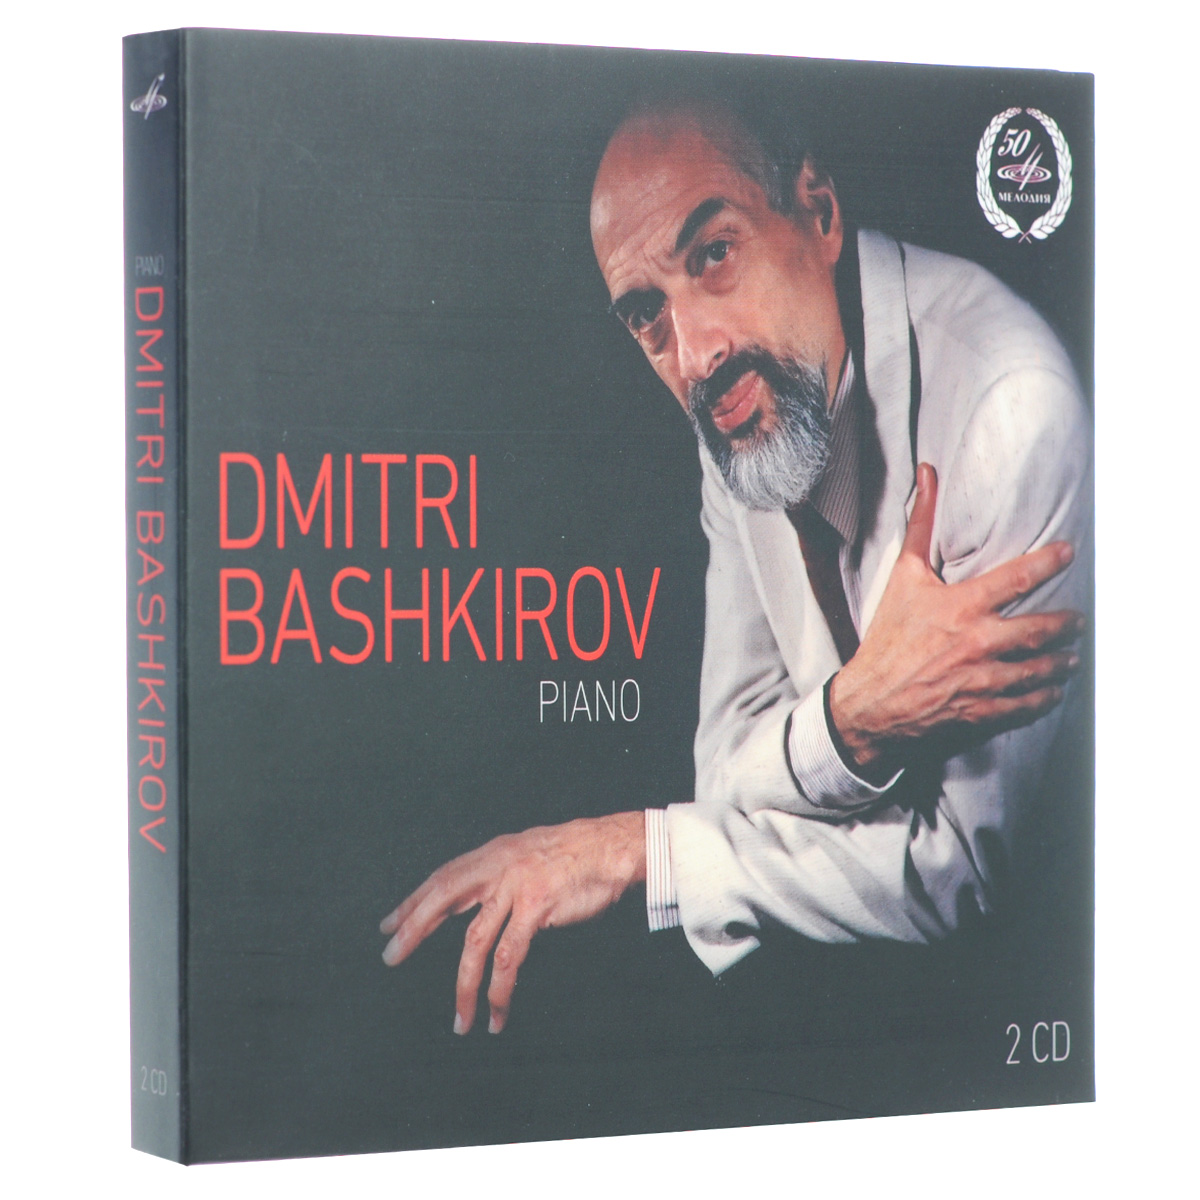 Дмитрий Башкиров Dmitri Bashkirov. Piano (2 CD) cd дмитрий хворостовский georgy sviridov russia cast adrift